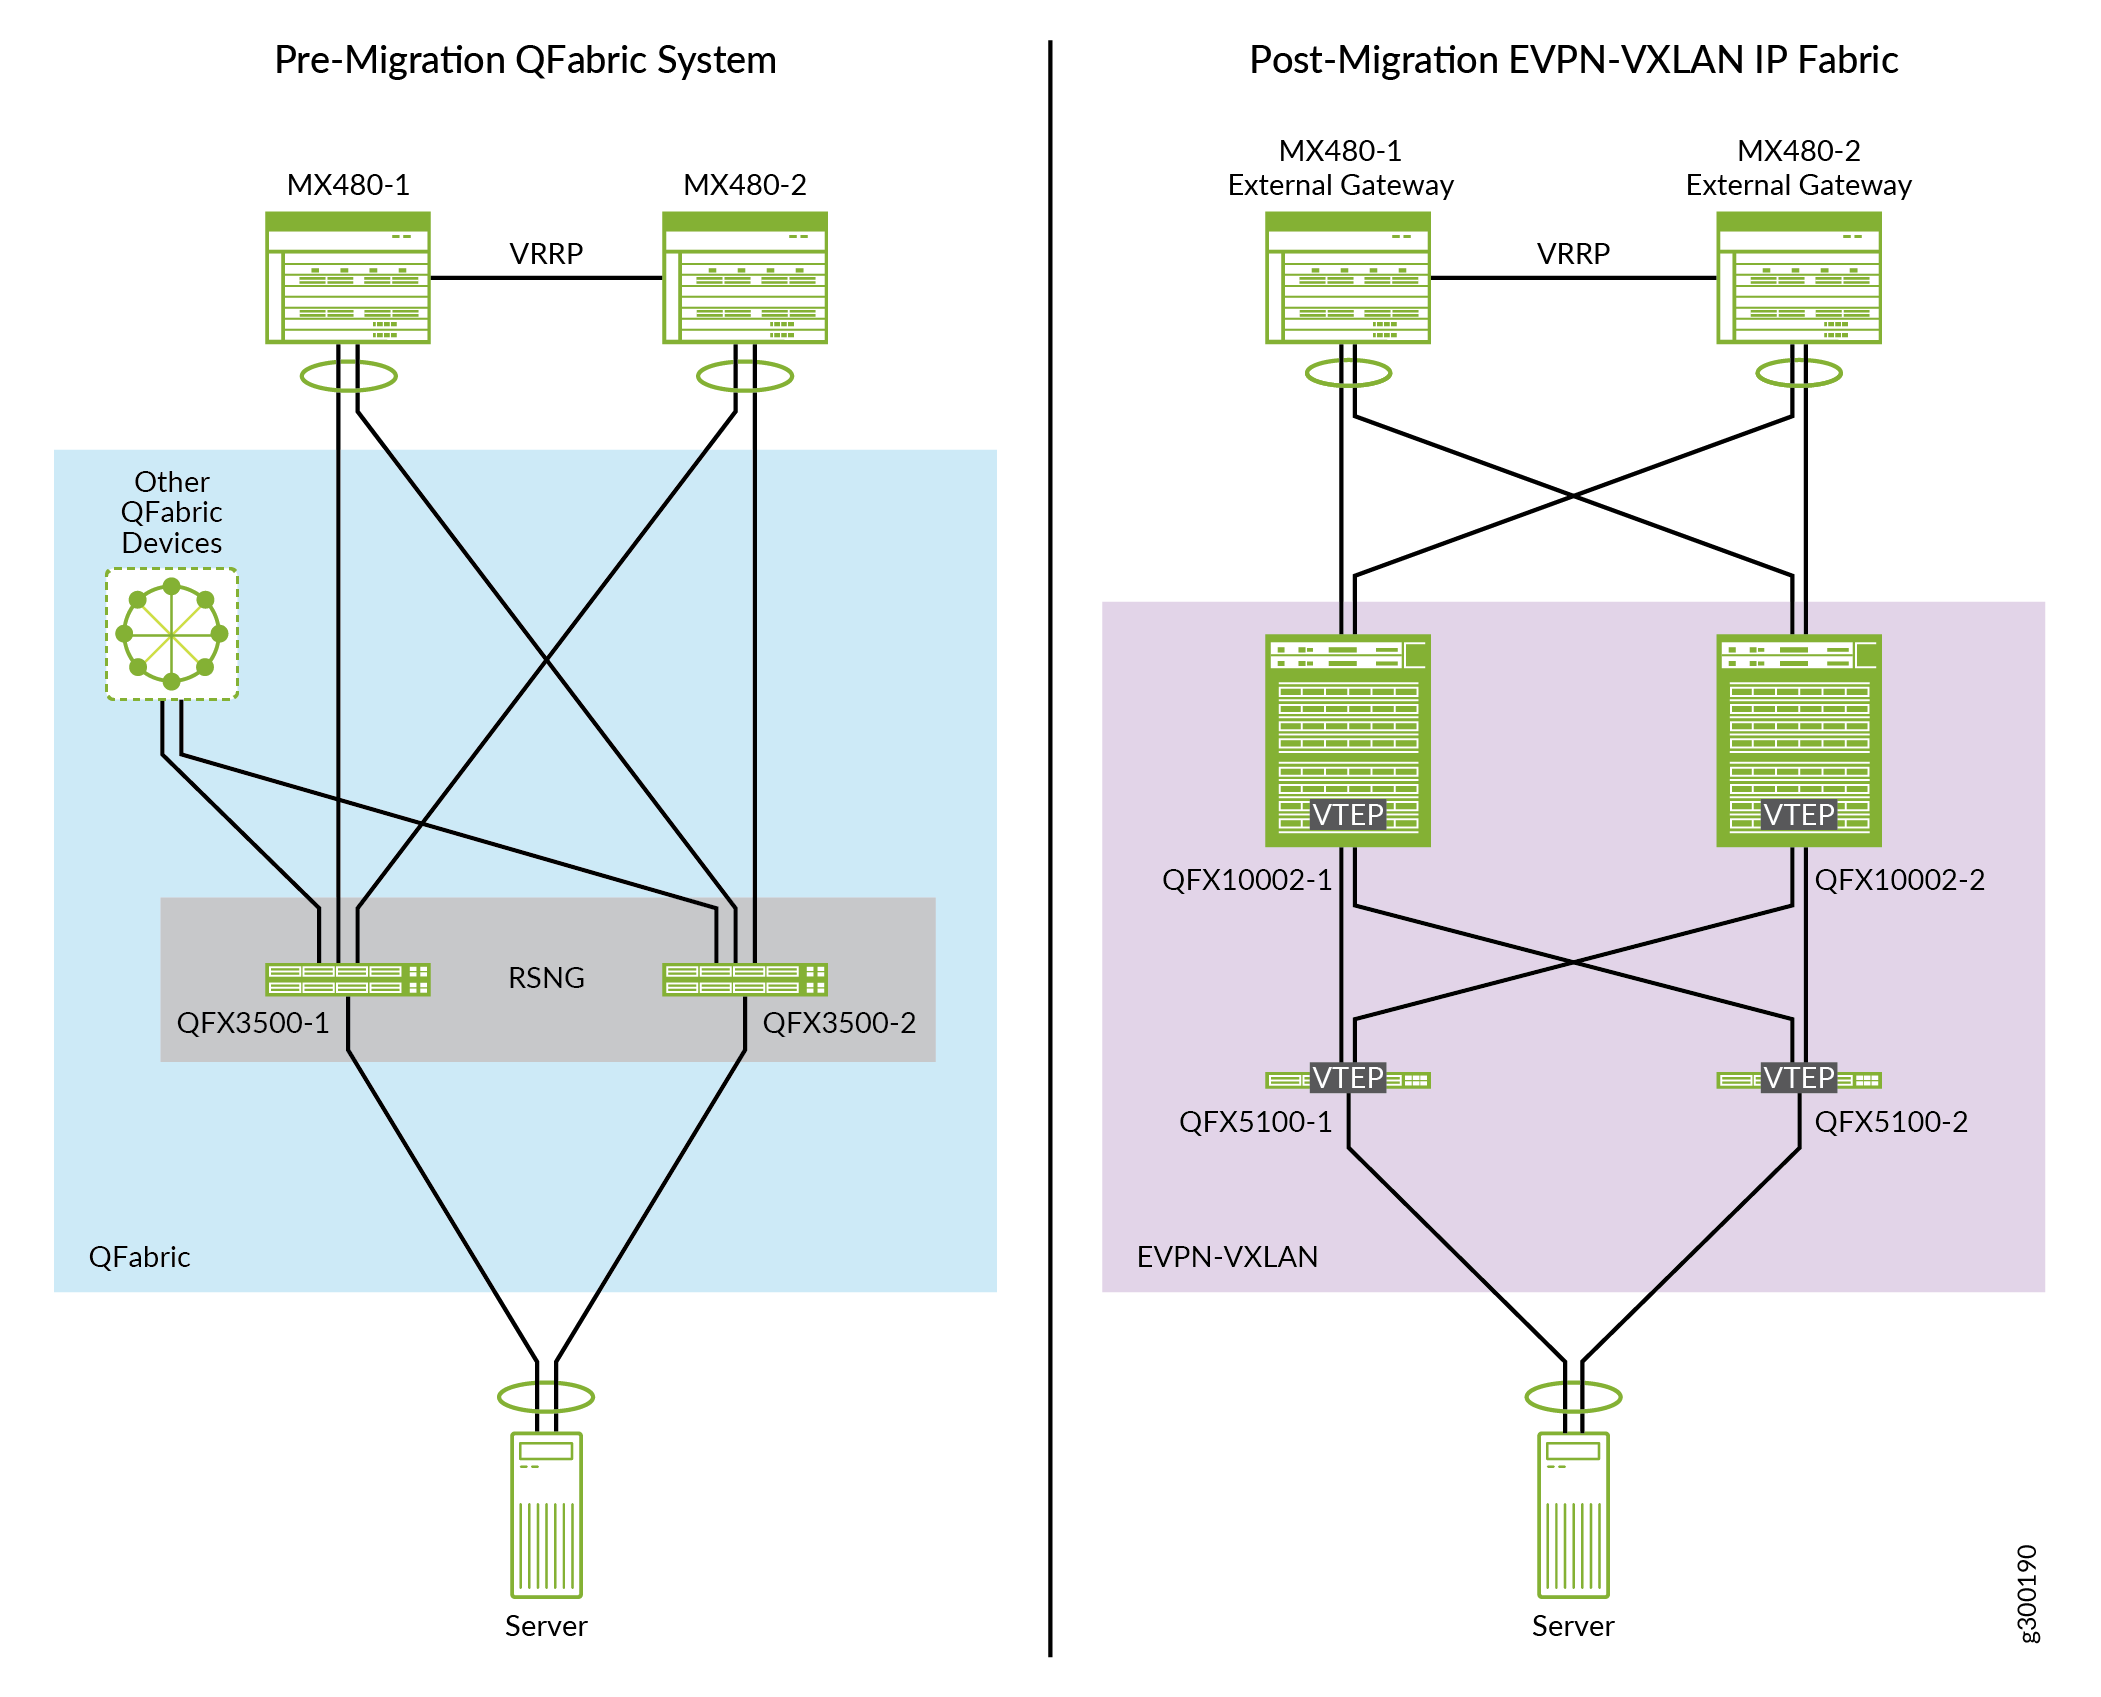 Example: Migrating a QFabric System to an EVPN-VXLAN IP